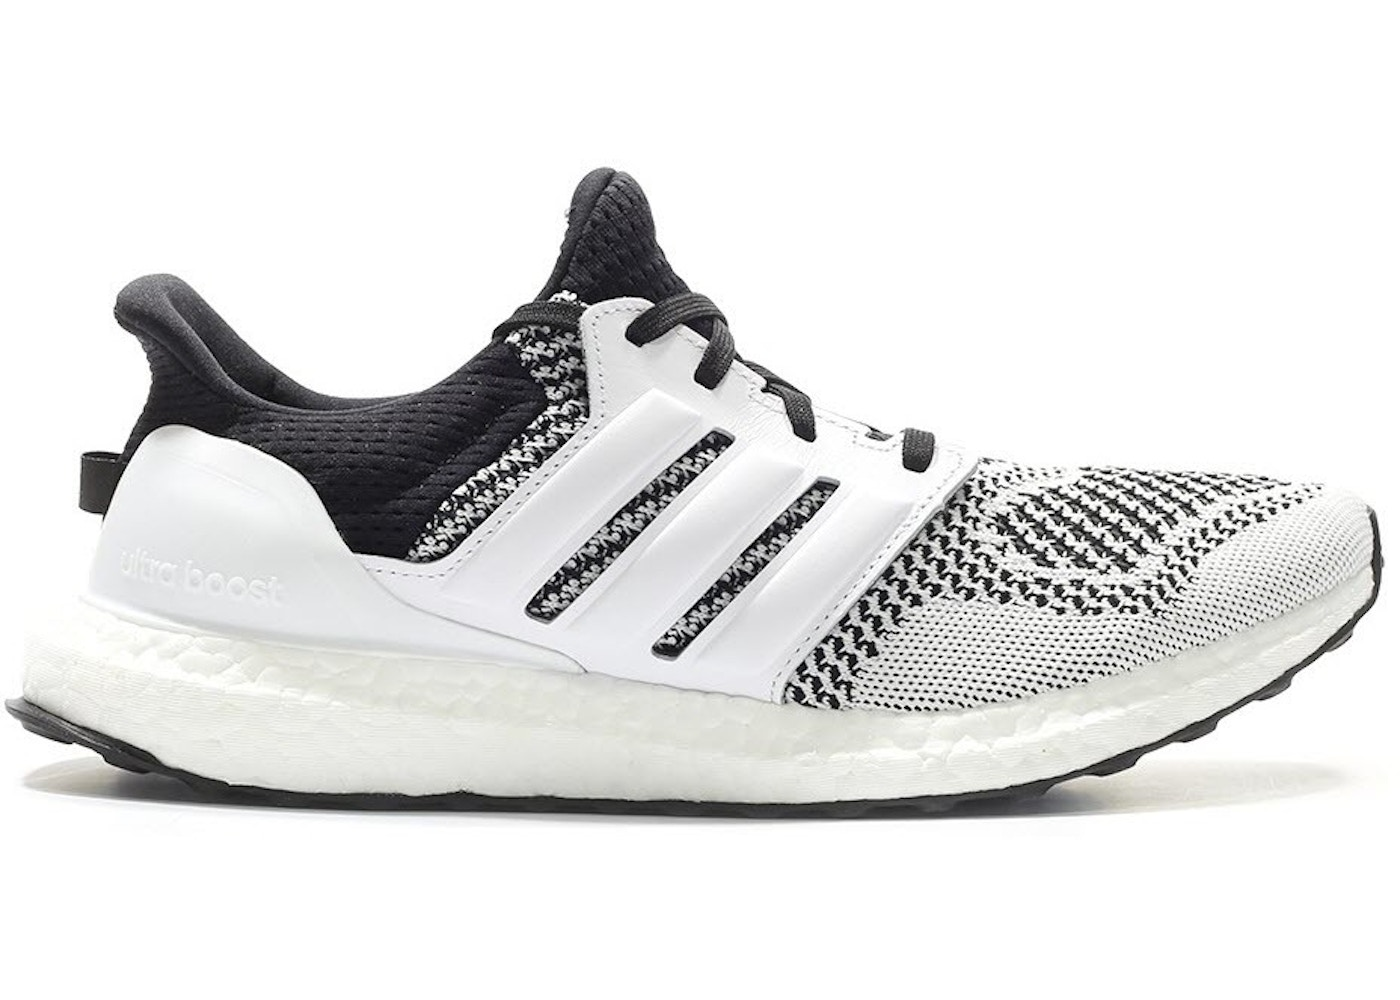 c19274d6 Buy adidas Ultra Boost Shoes & Deadstock Sneakers